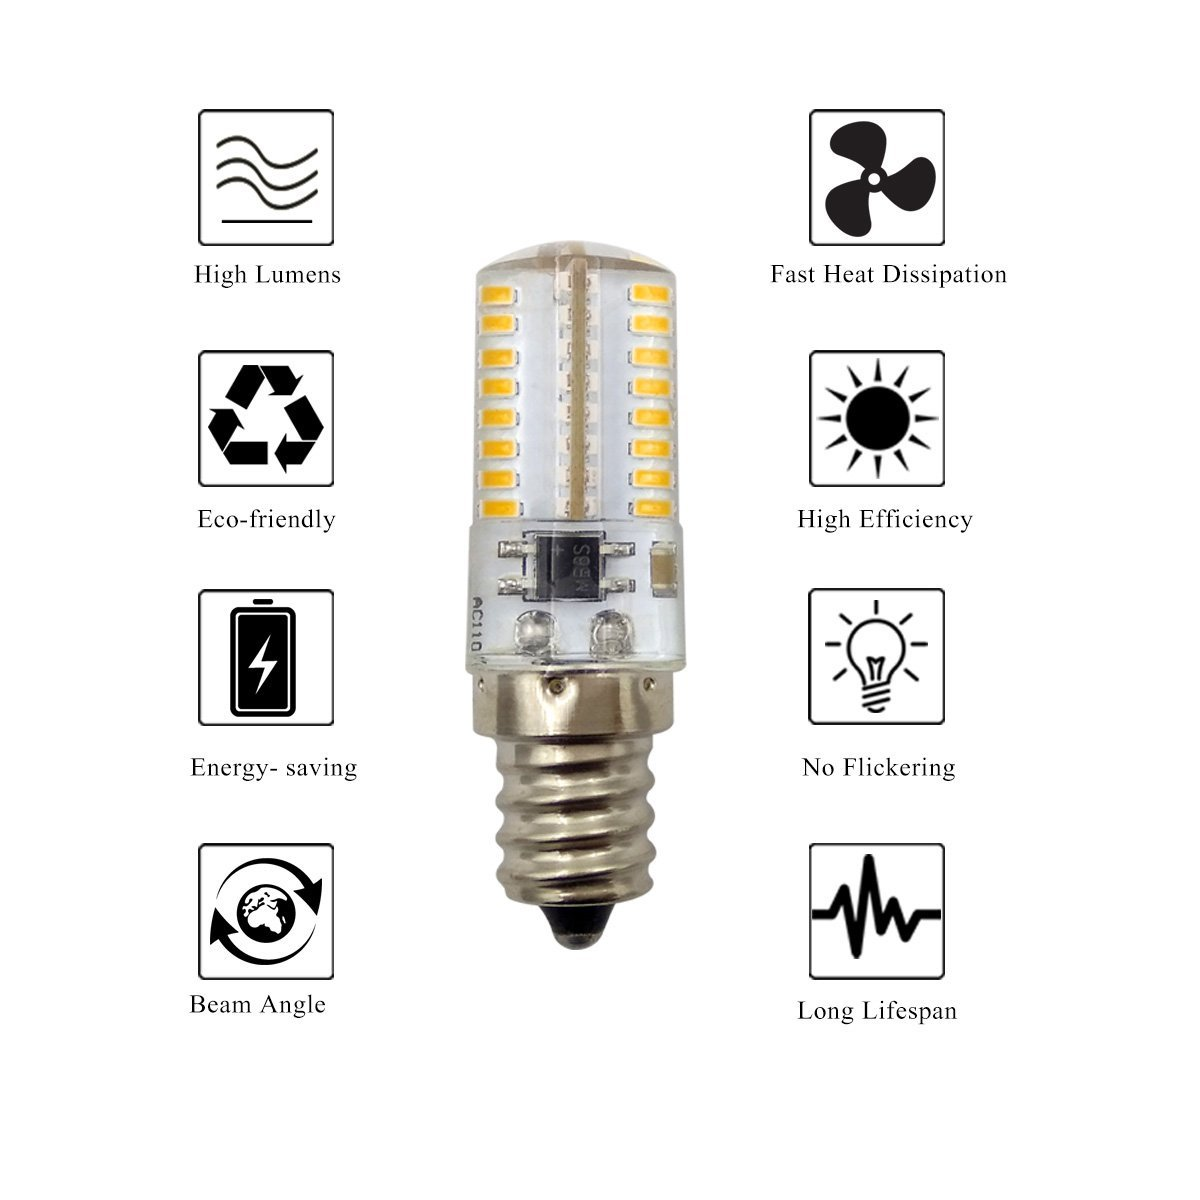 ZHENMING Dimmable E12 LED Bulb 4W Daylight White 6000K T3//T4 Candelabra Base E12 Bulb for Ceiling Fan Pack of 10 Indoor Lighting Chandelier 40W Halogen Replacement